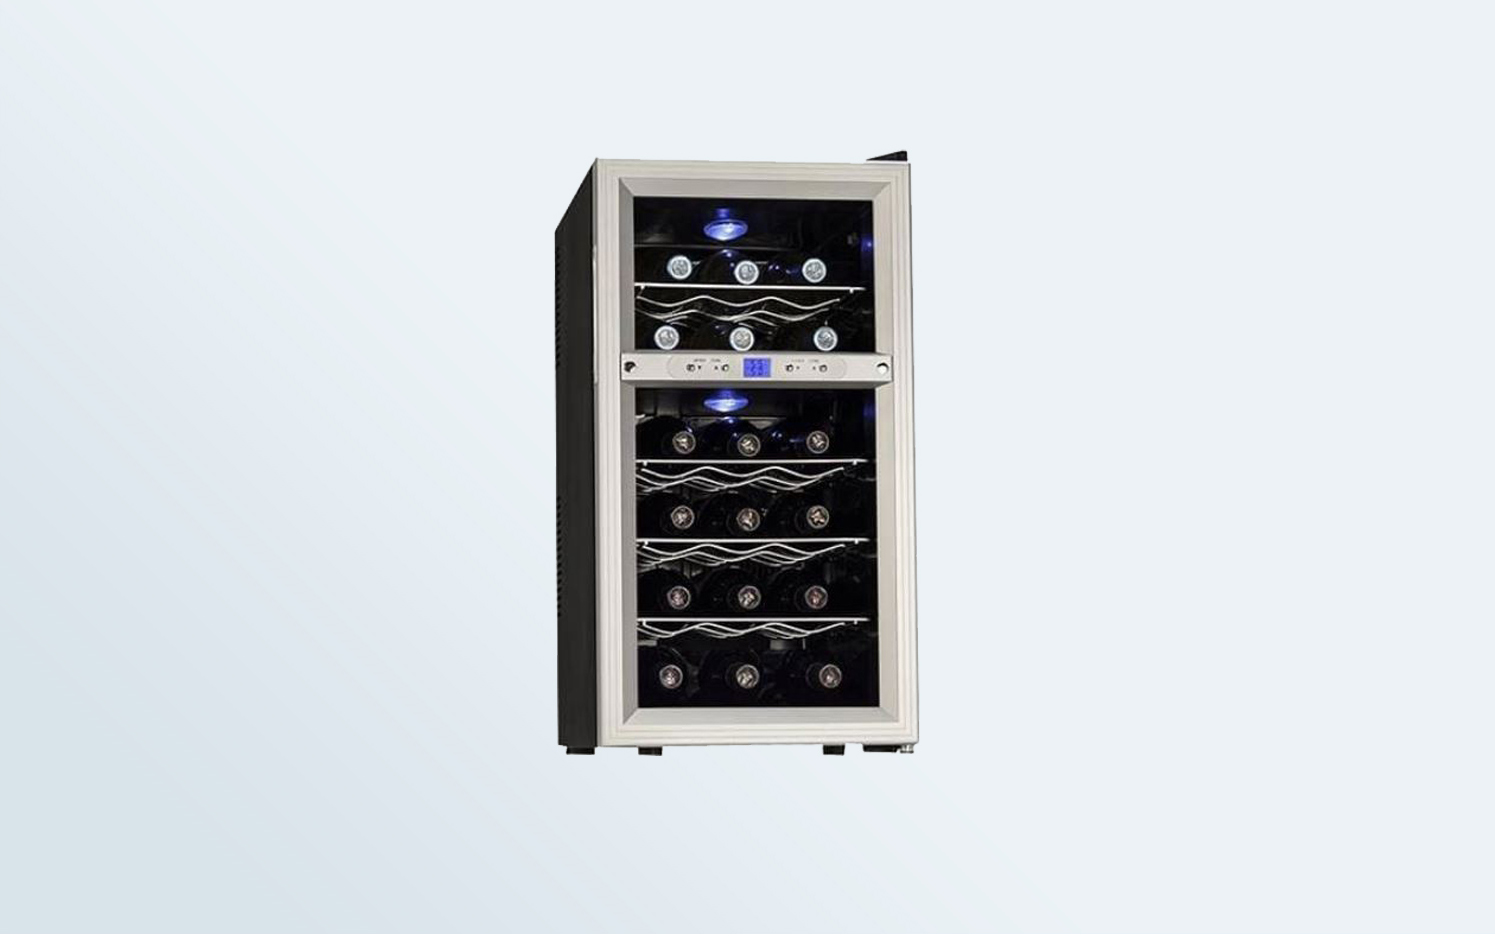 Best Wine Fridge of 2019 - Reviews of Wine Coolers and